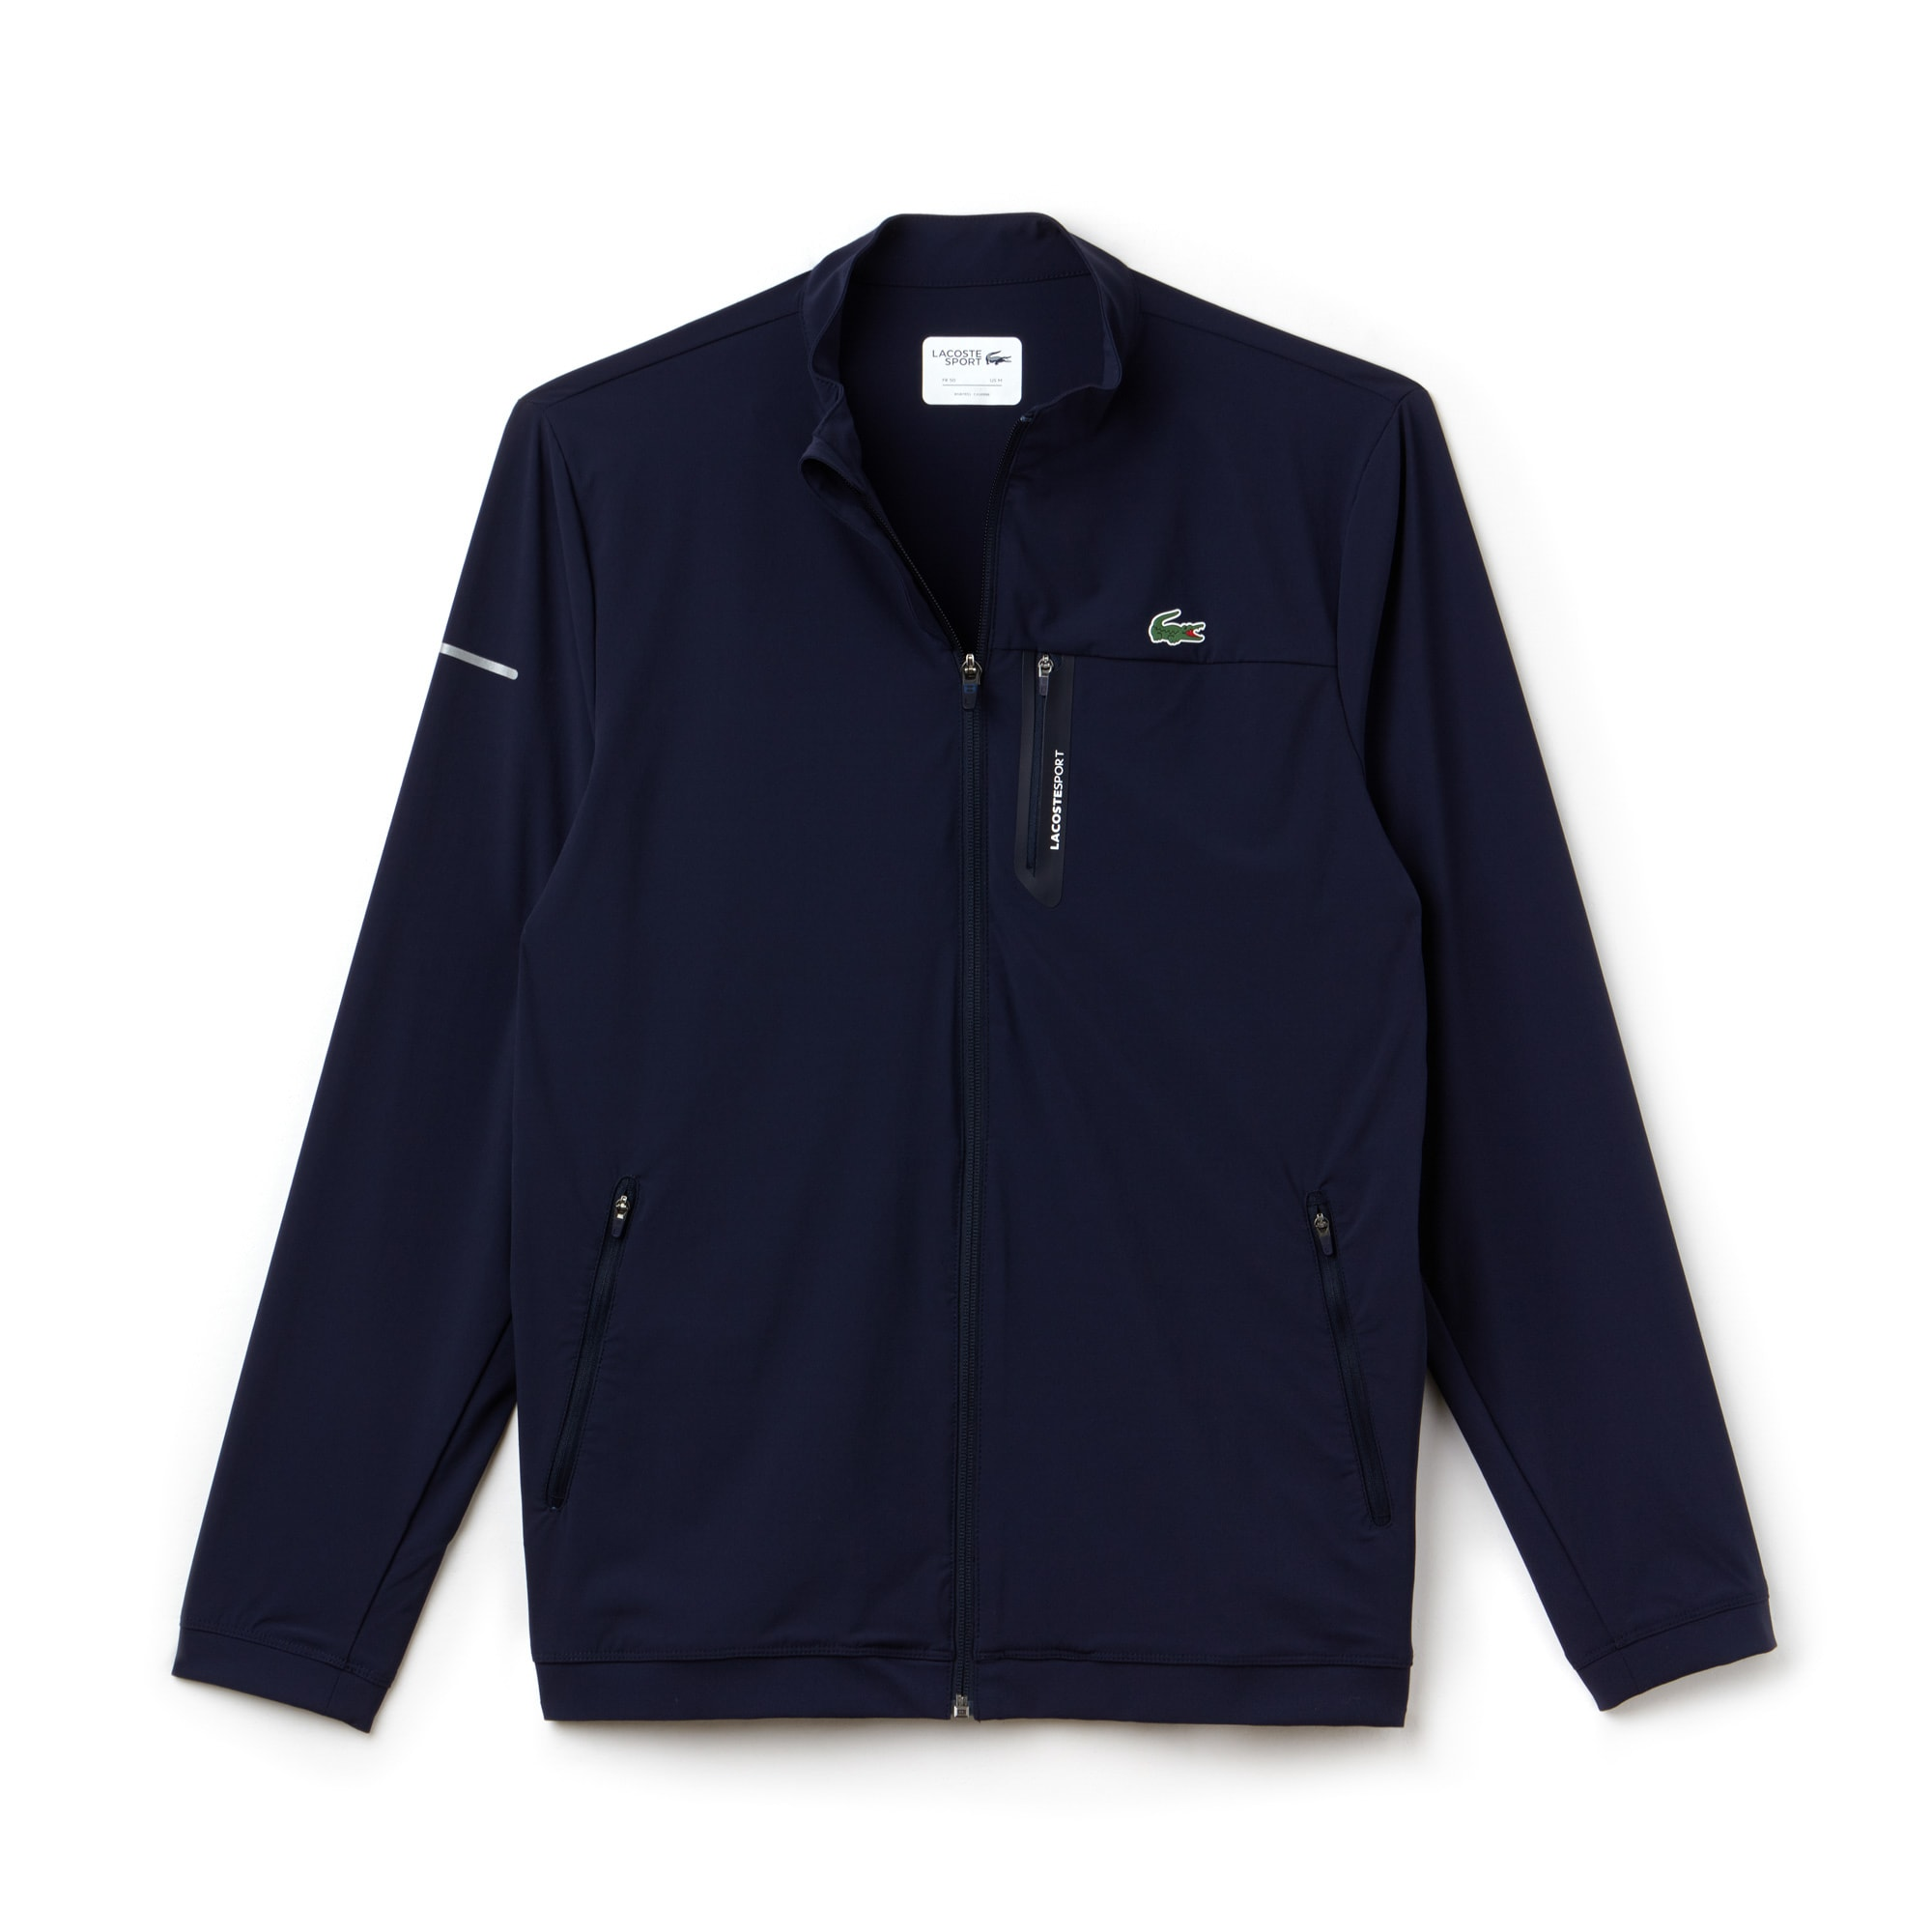 Mens 라코스테 Lacoste SPORT Technical Taffeta Zip Golf Jacket,navy blue/navy blue